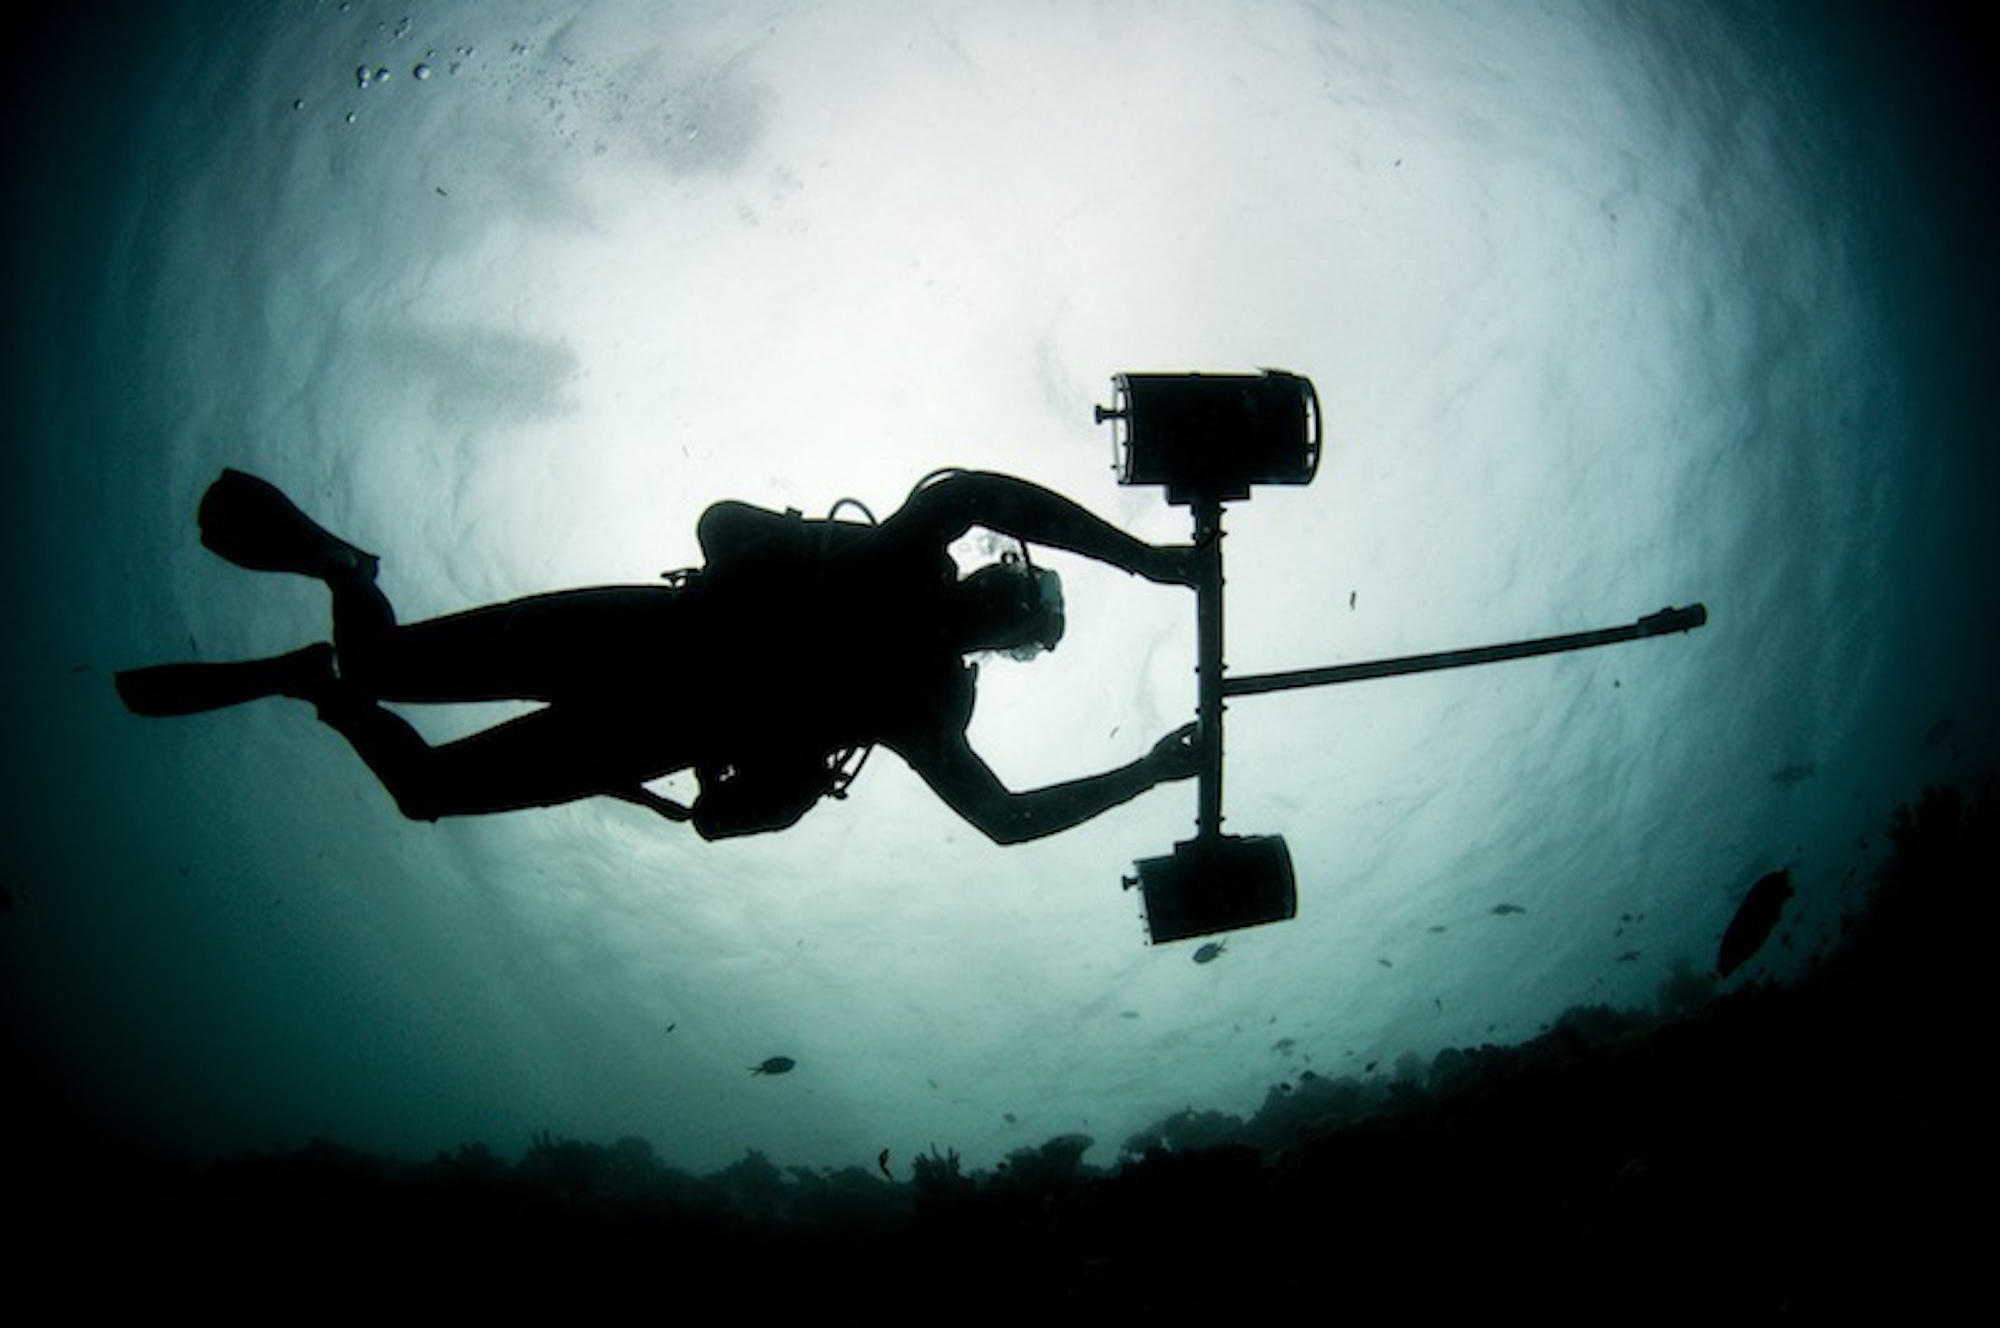 stereo-video, research, marine science, education